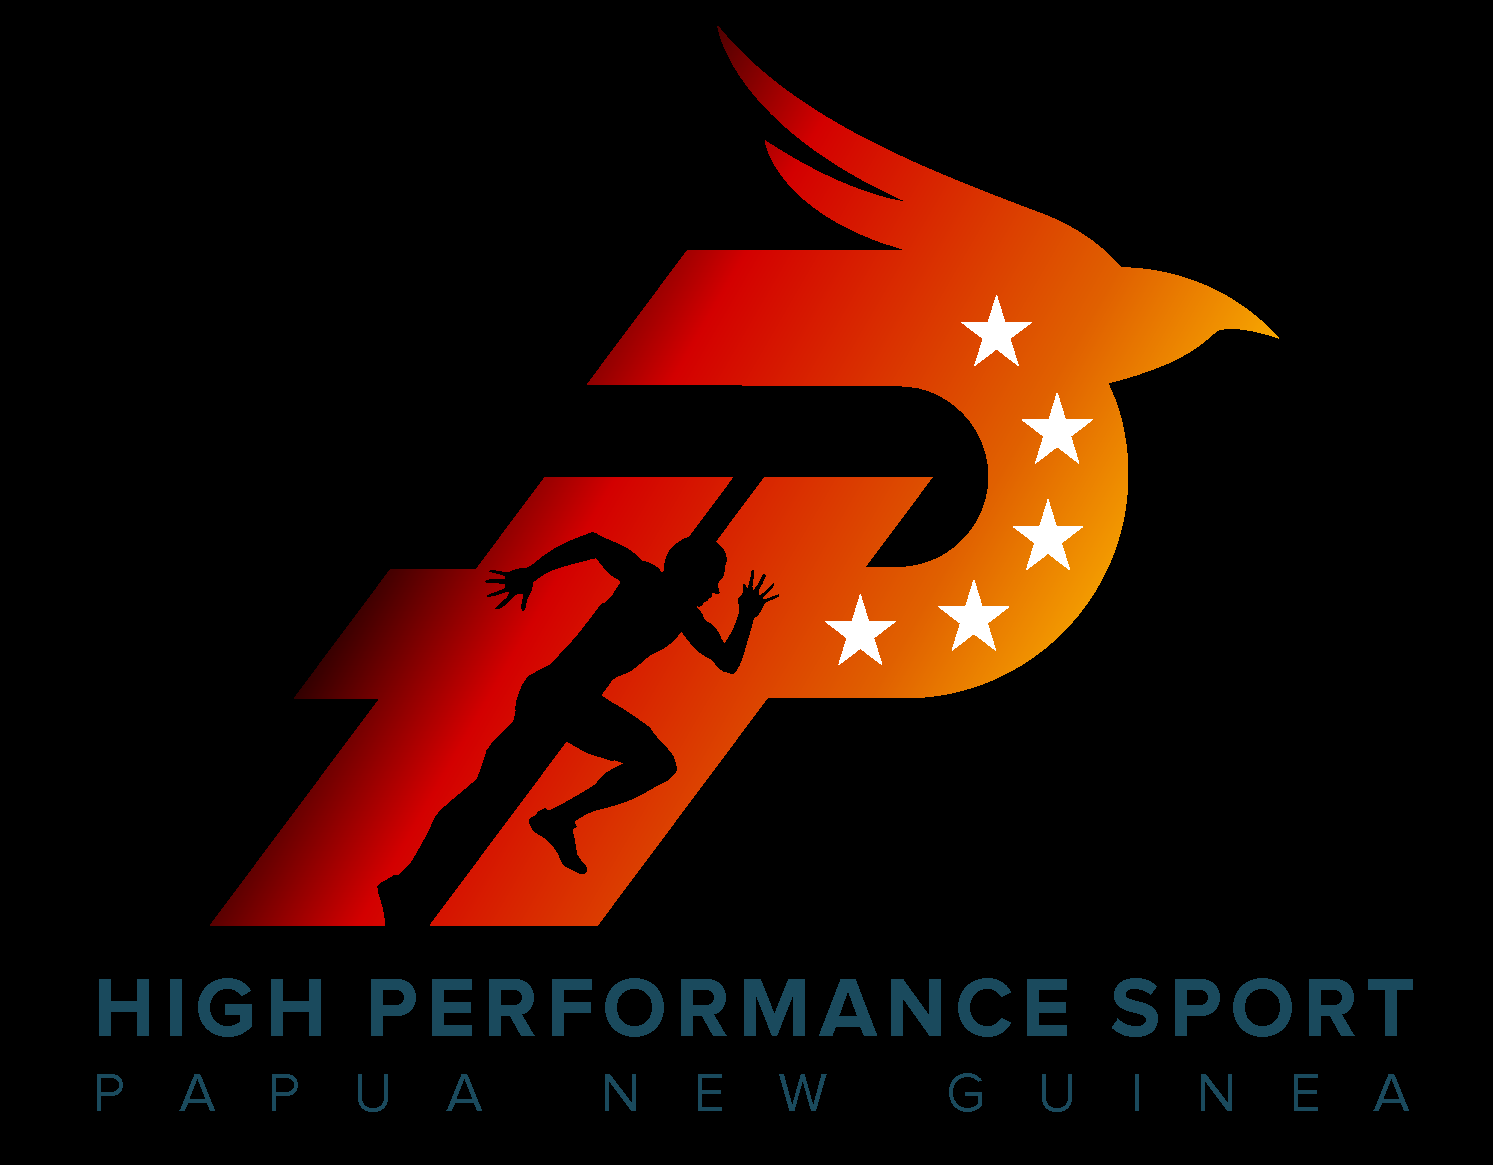 High Performance Sport PNG